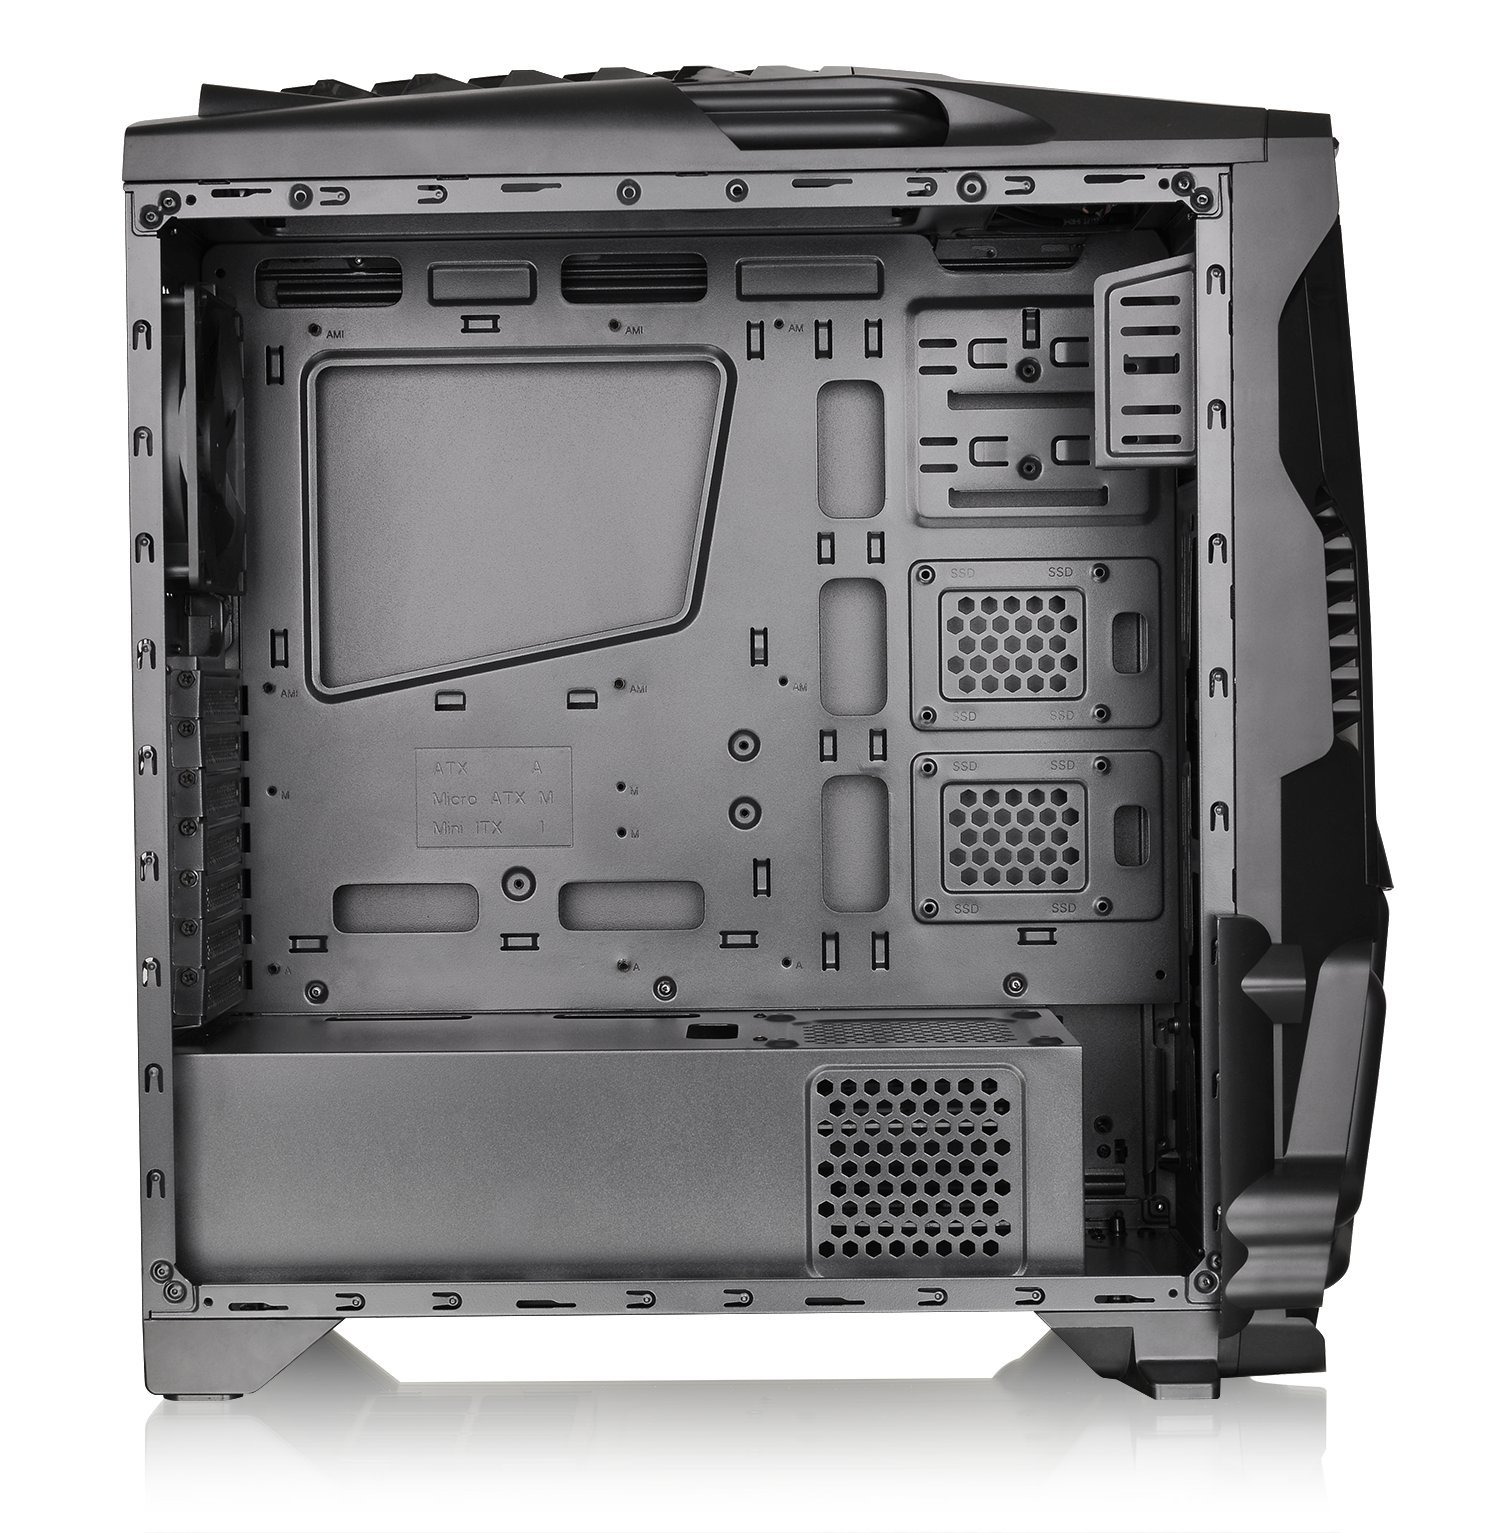 Thermaltake Versa N24 Black ATX Mid Tower Gaming Computer Case Chassis with Power Supply Cover, 120mm Rear Fan preinstalled. CA-1G1-00M1WN-00 by Thermaltake (Image #5)